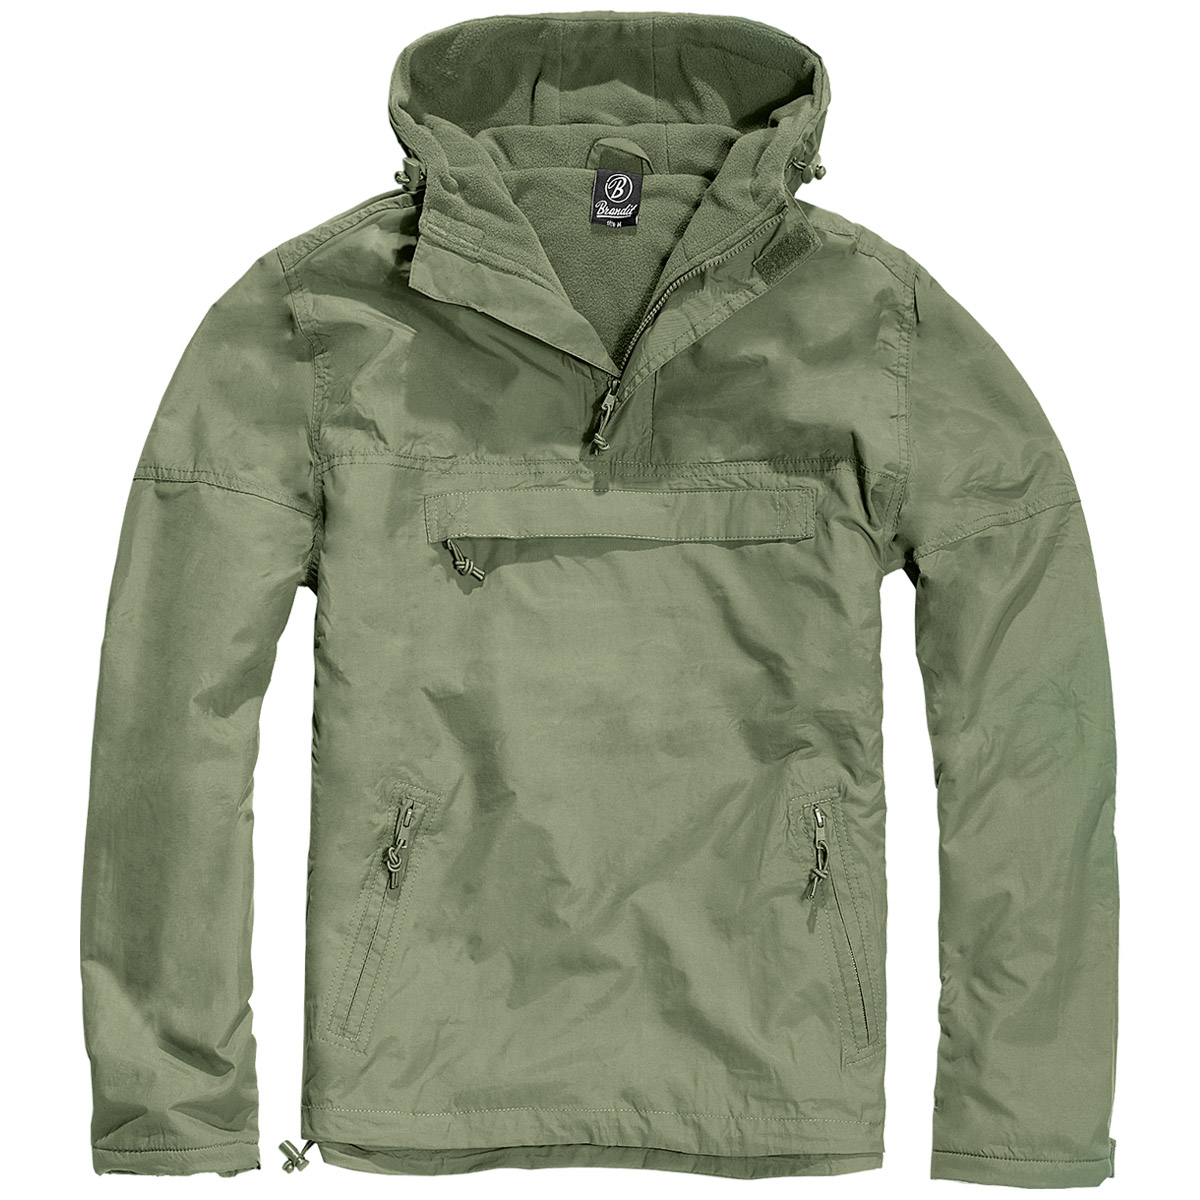 Men's Anorak Jackets. Looking for the perfect all-weather jacket? Tillys selection of men's anorak jackets has got you covered. With long sleeve and short sleeve options, pullover anoraks, half-zips and more, Tillys has an anorak jacket to keep you protected rain or shine.